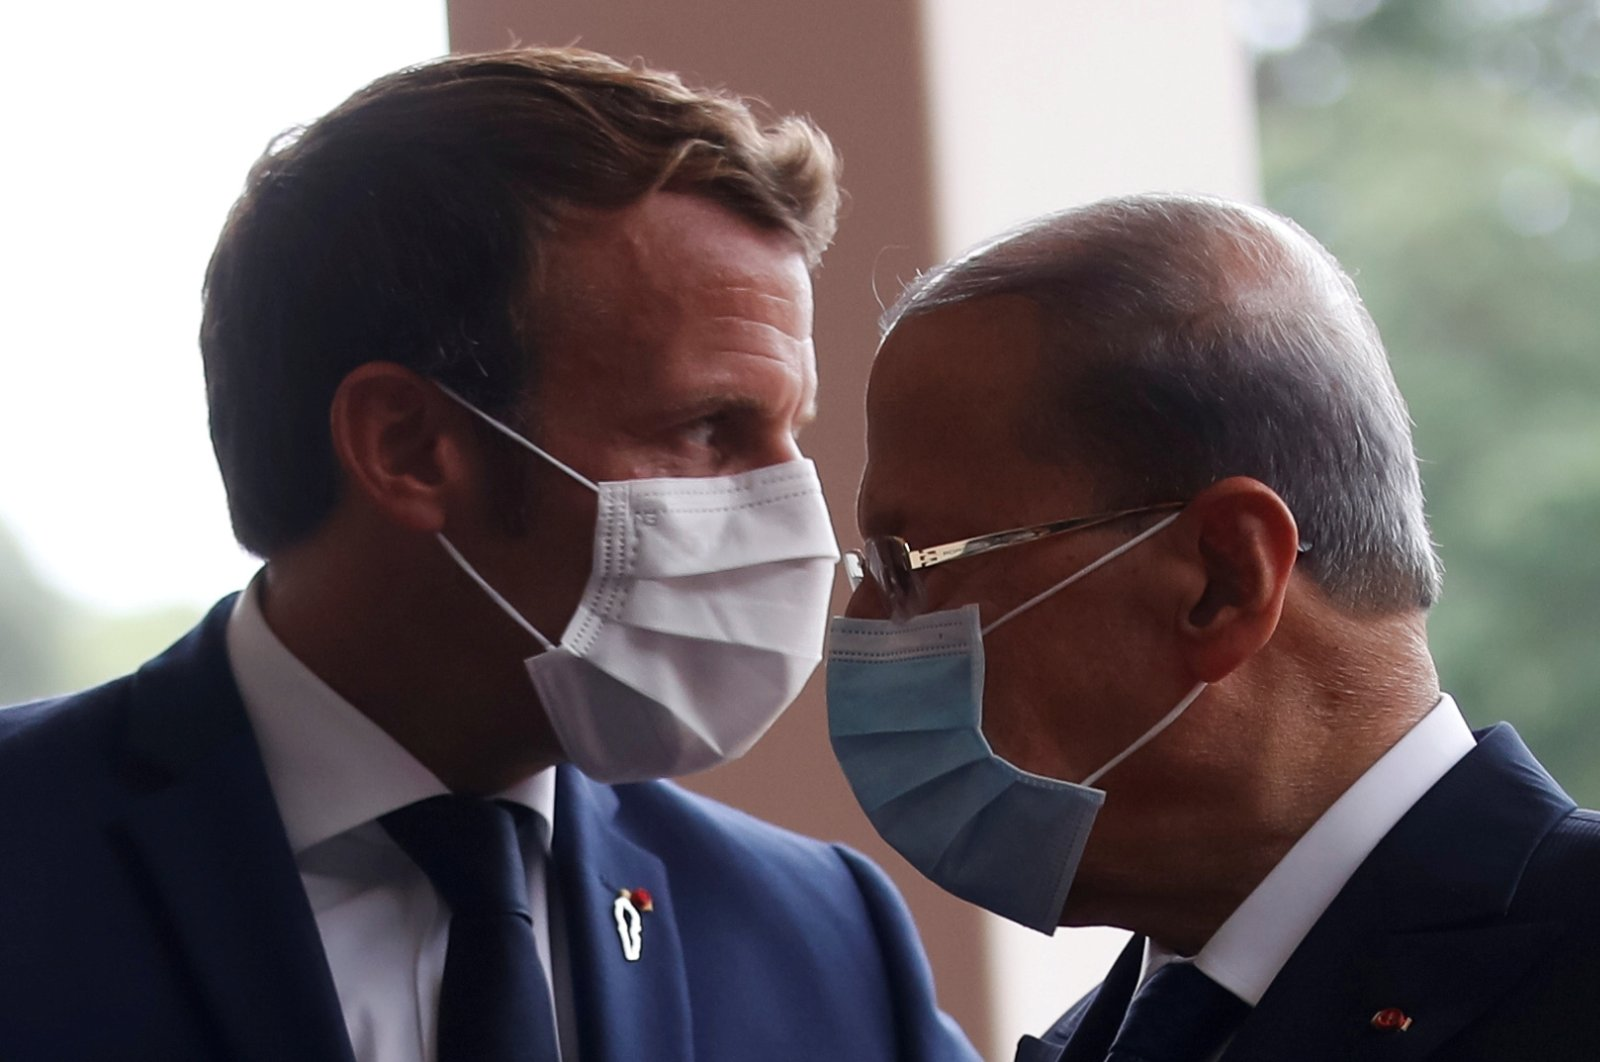 French President Emmanuel Macron (L) and Lebanon's President Michel Aoun wear face masks as they arrive to attend a meeting at the presidential palace, Baabda, Sept. 1, 2020. (REUTERS Photo)